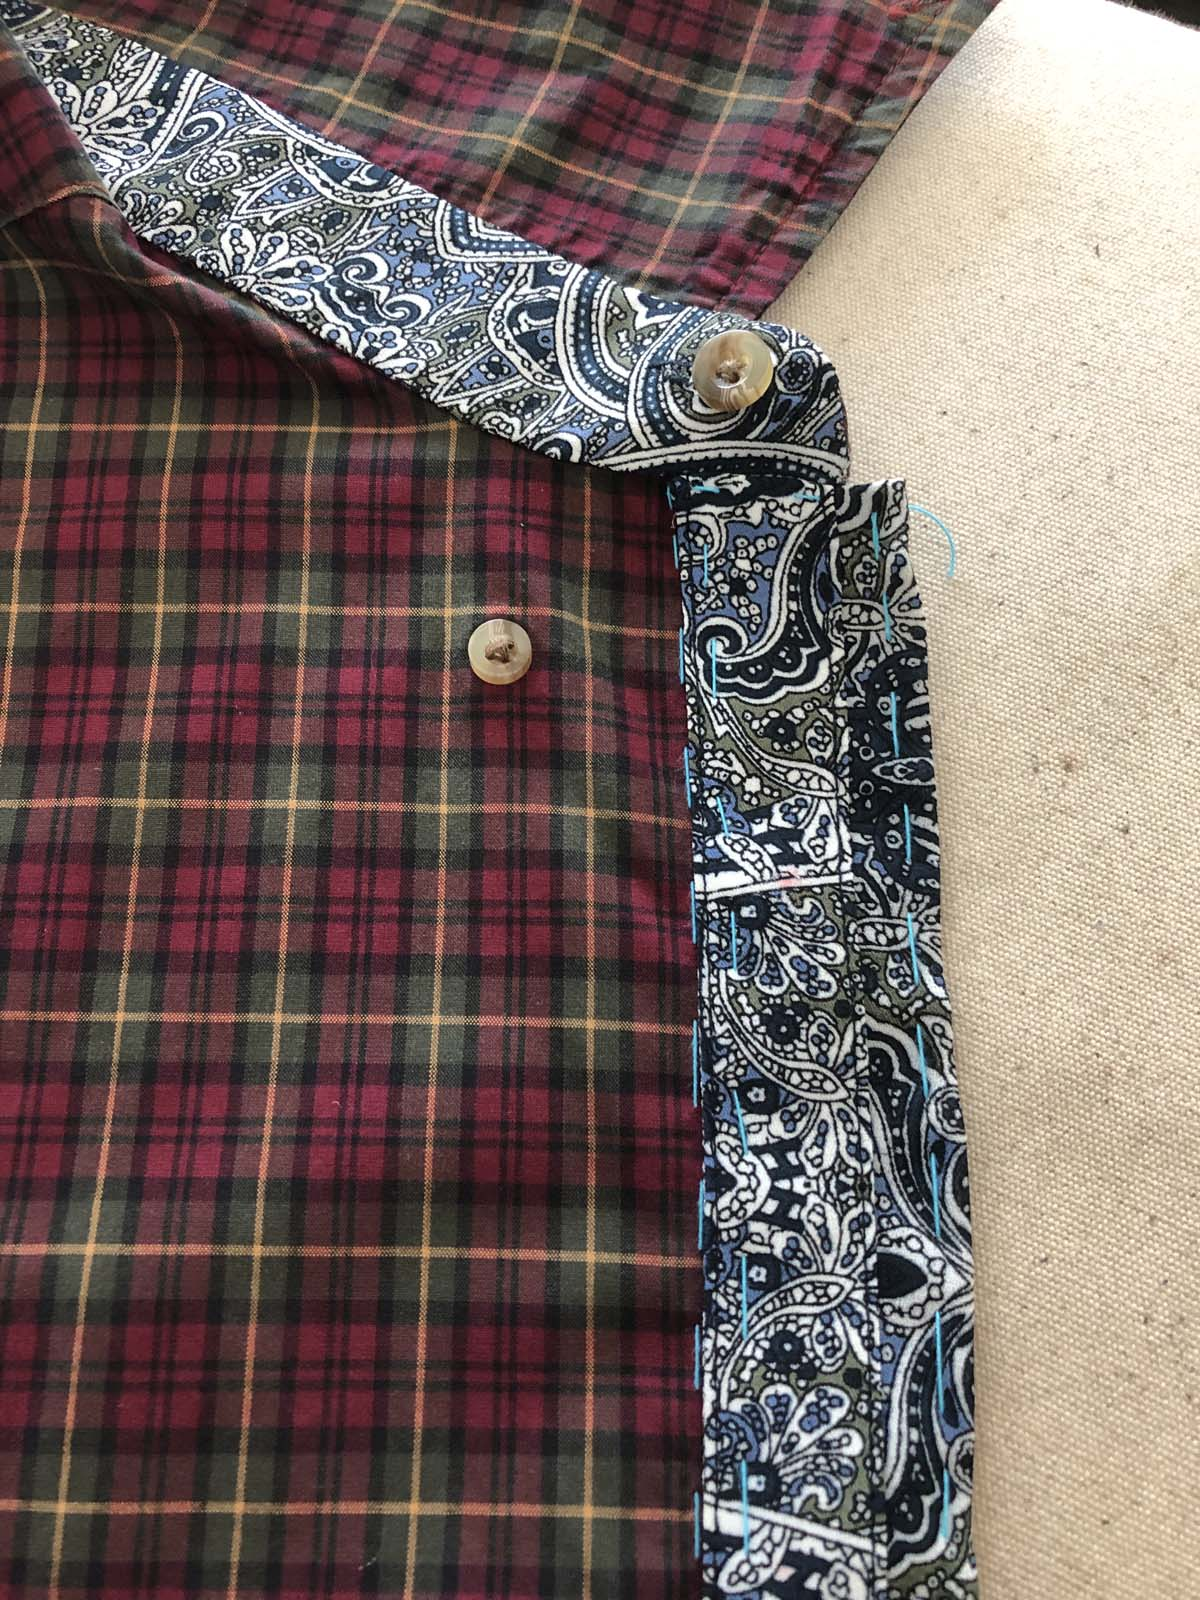 Hand-baste the front placket to the shirt front